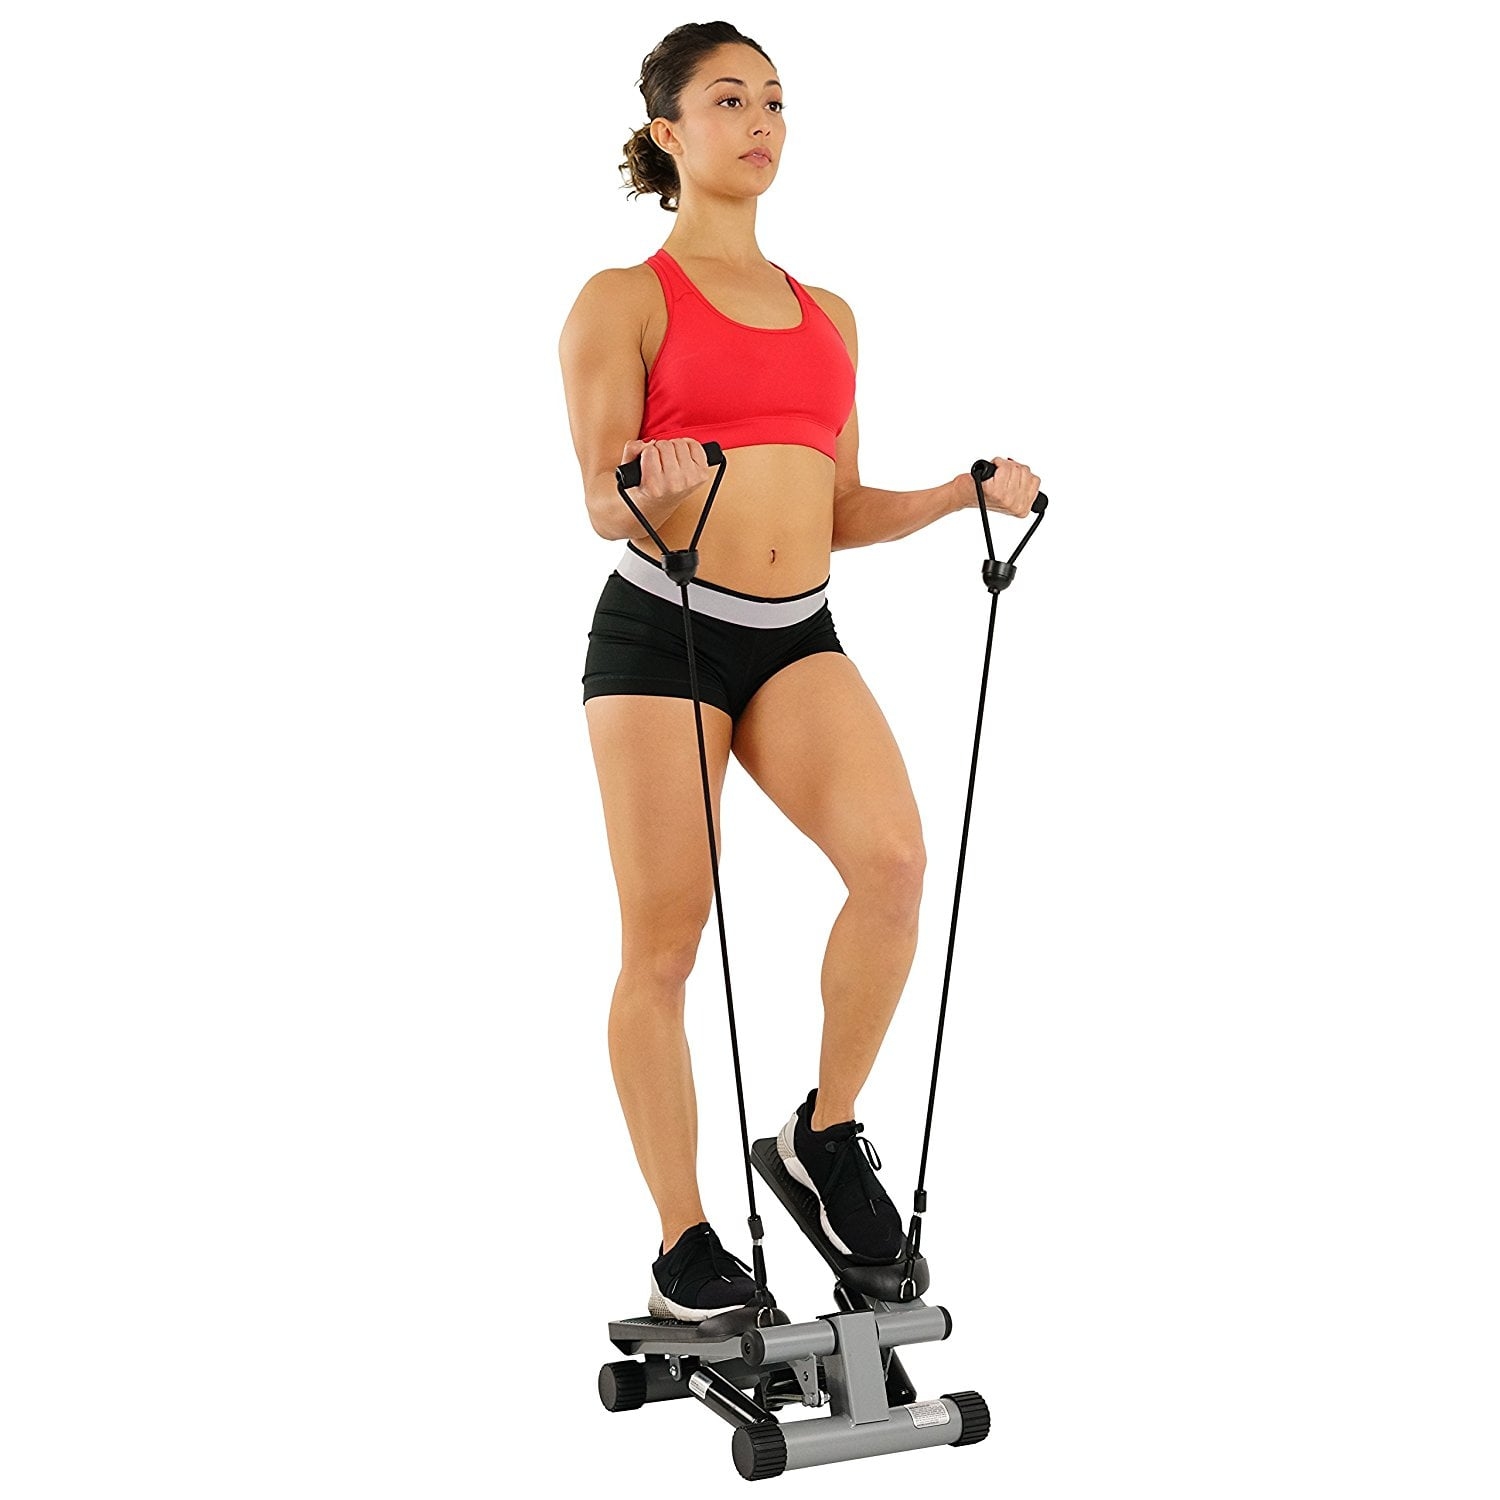 I Bought This $48 Stair Stepper on Amazon, and It Changed the Way I Exercise